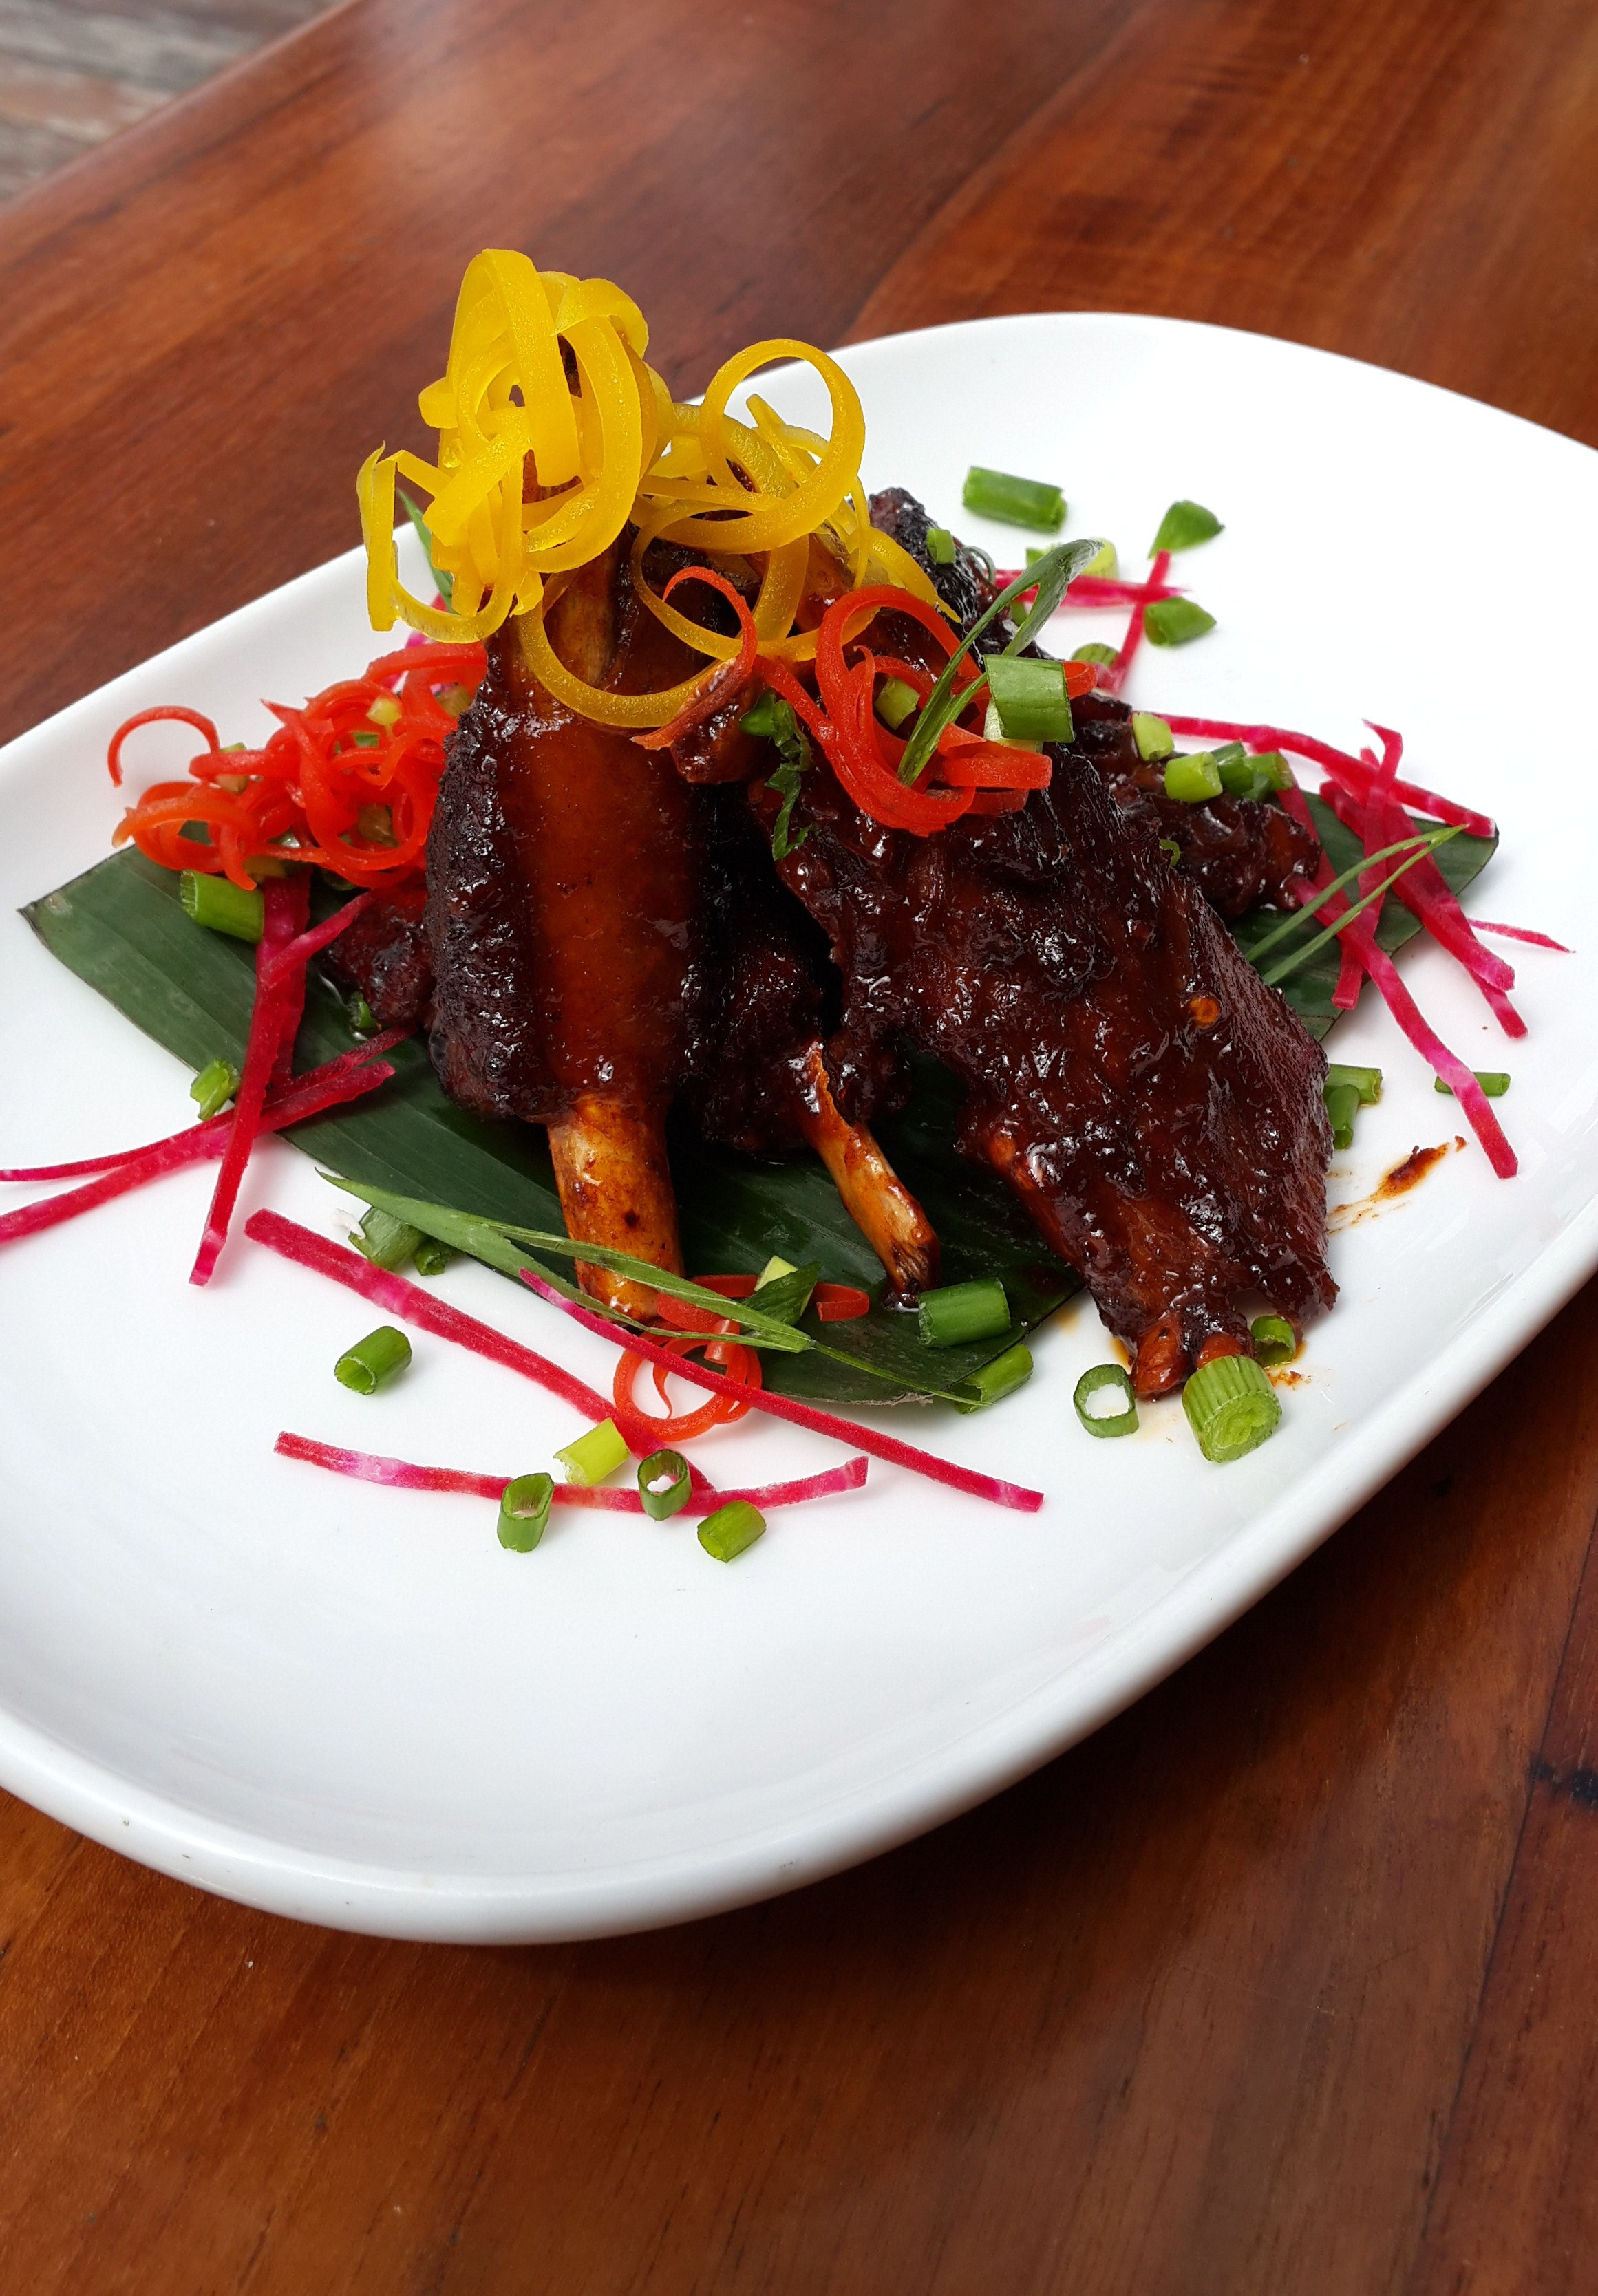 Barbequed pork spare ribs